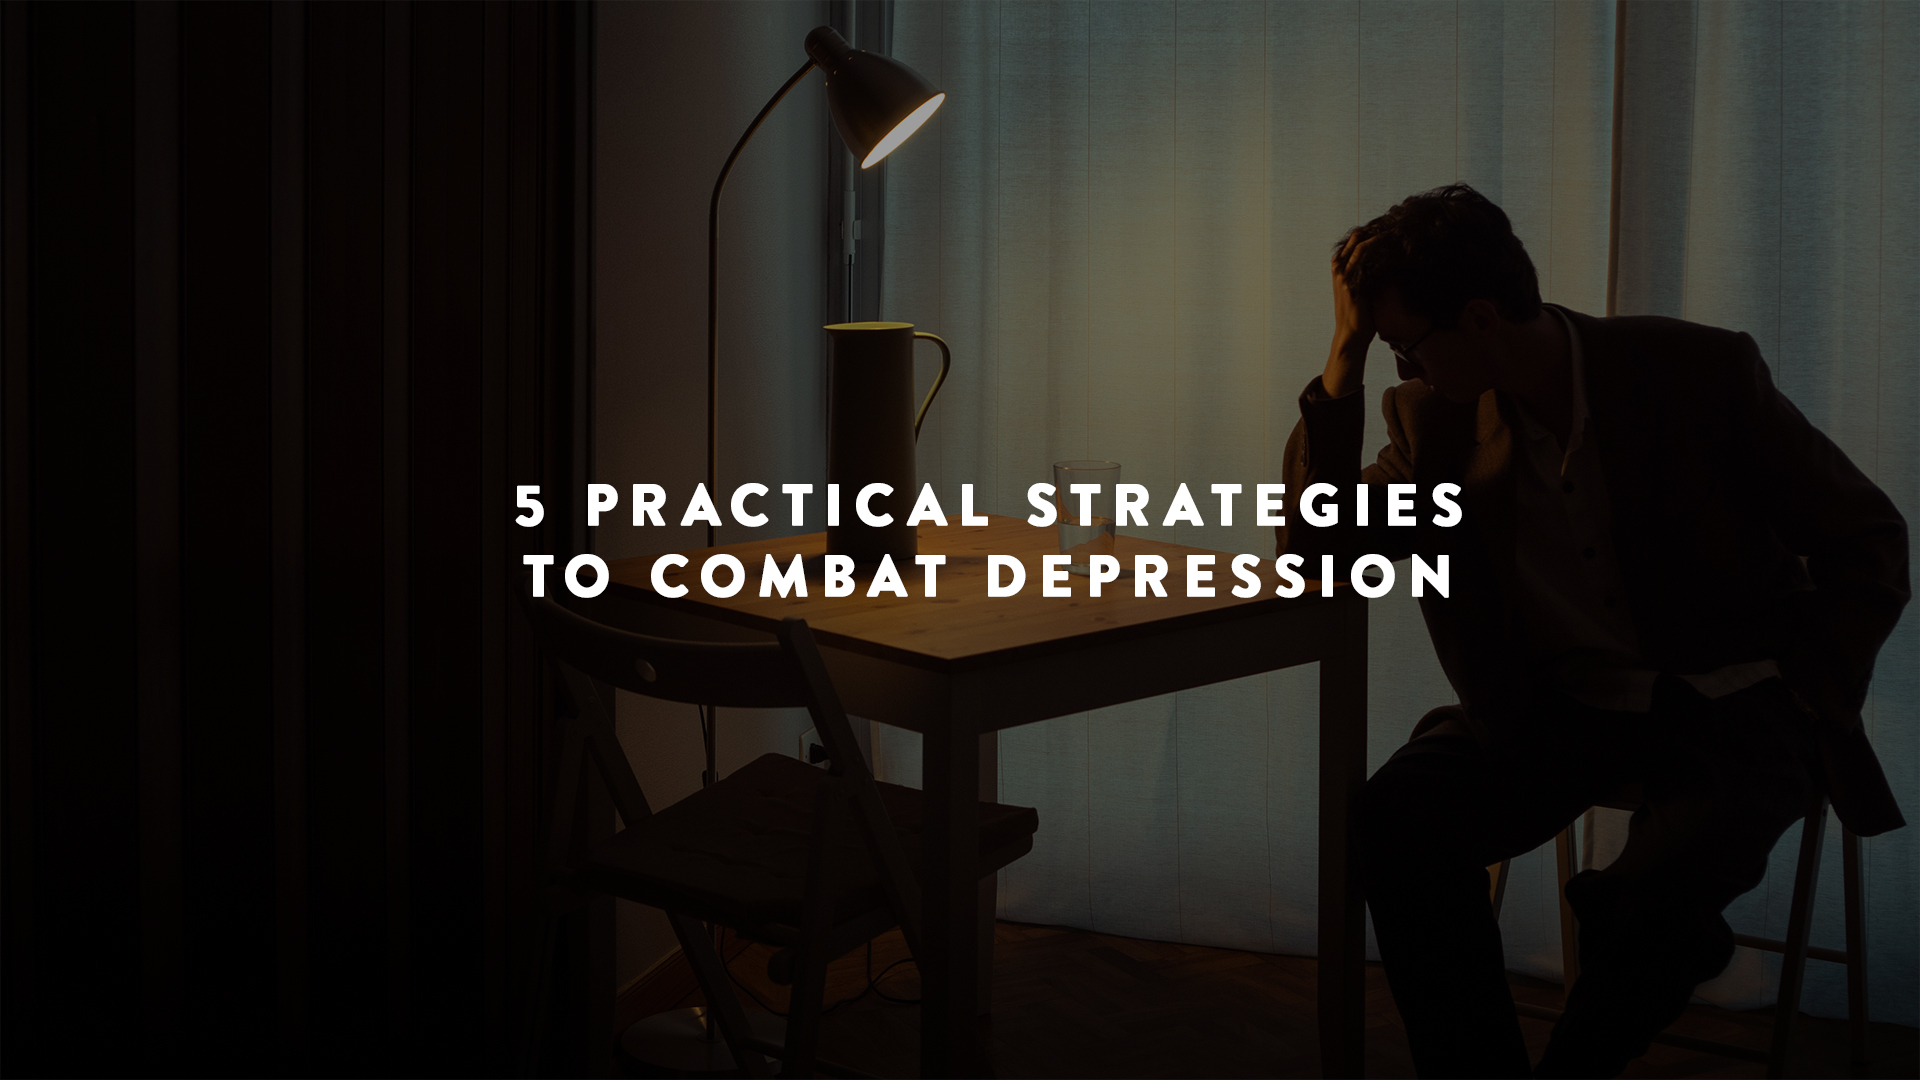 Practical Strategies For Parenting >> 5 Practical Strategies To Combat Depression Long Room